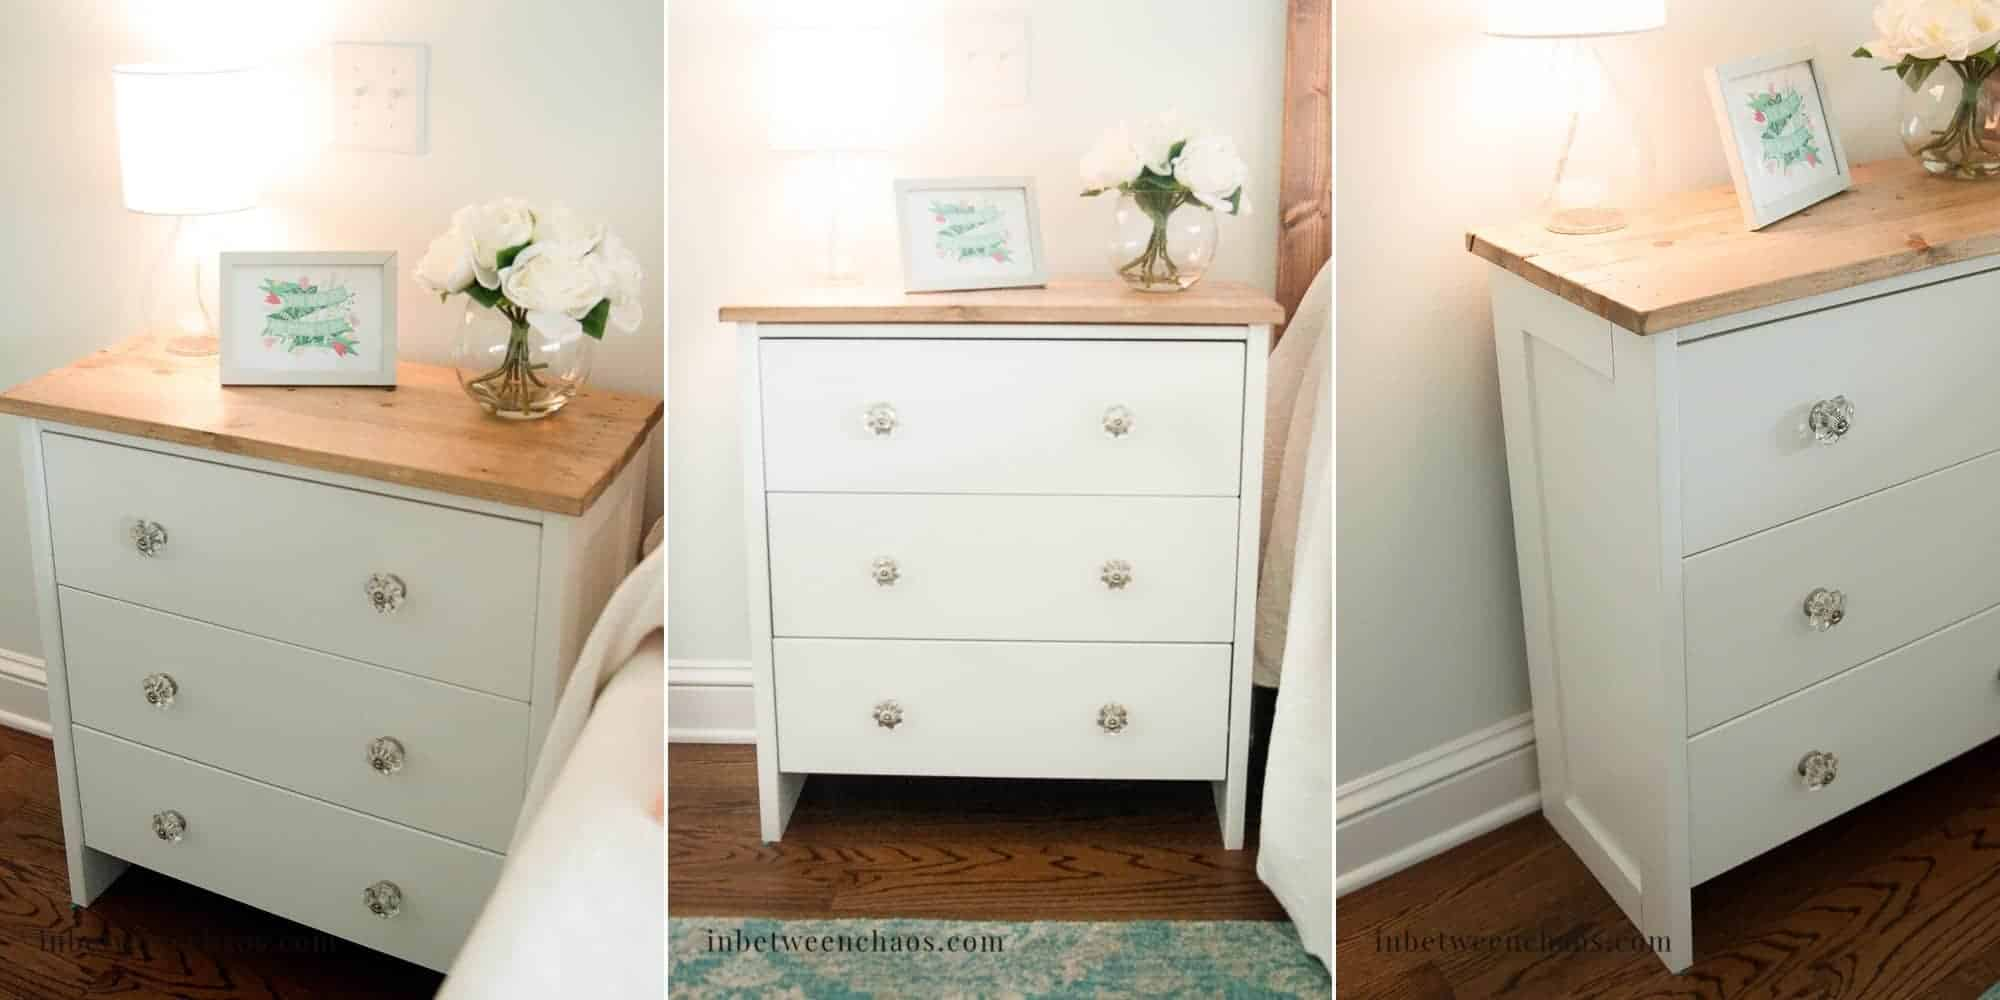 a-makeover-with-paint-and-wood-5273077